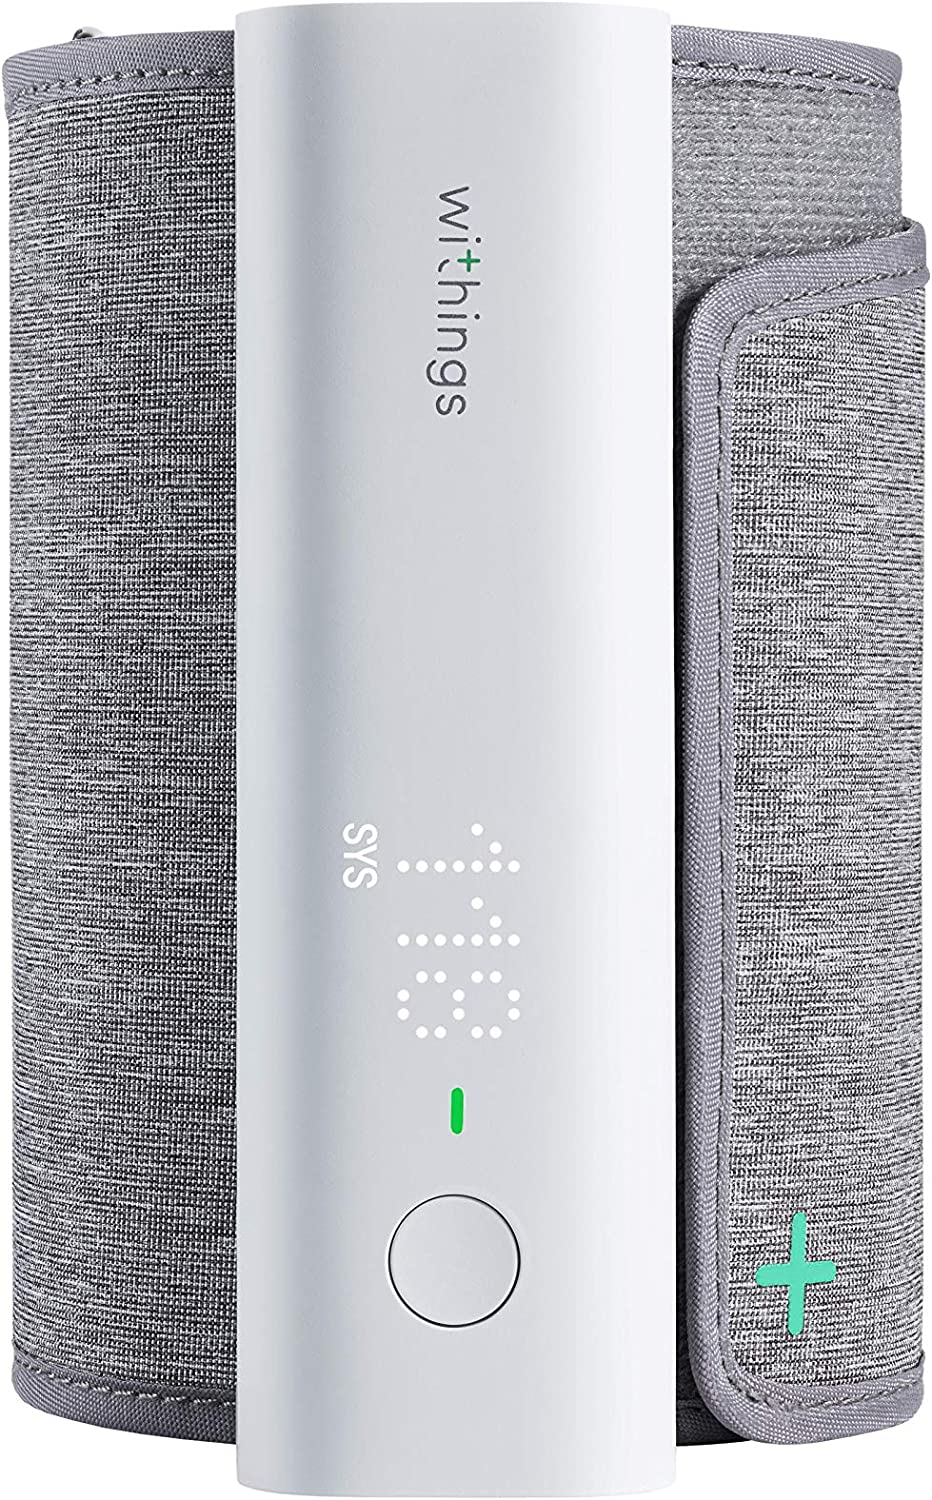 Withings BPM Connect - Tensiómetro de brazo digital, Bluetooth y Wifi, Aplicación Health Mate